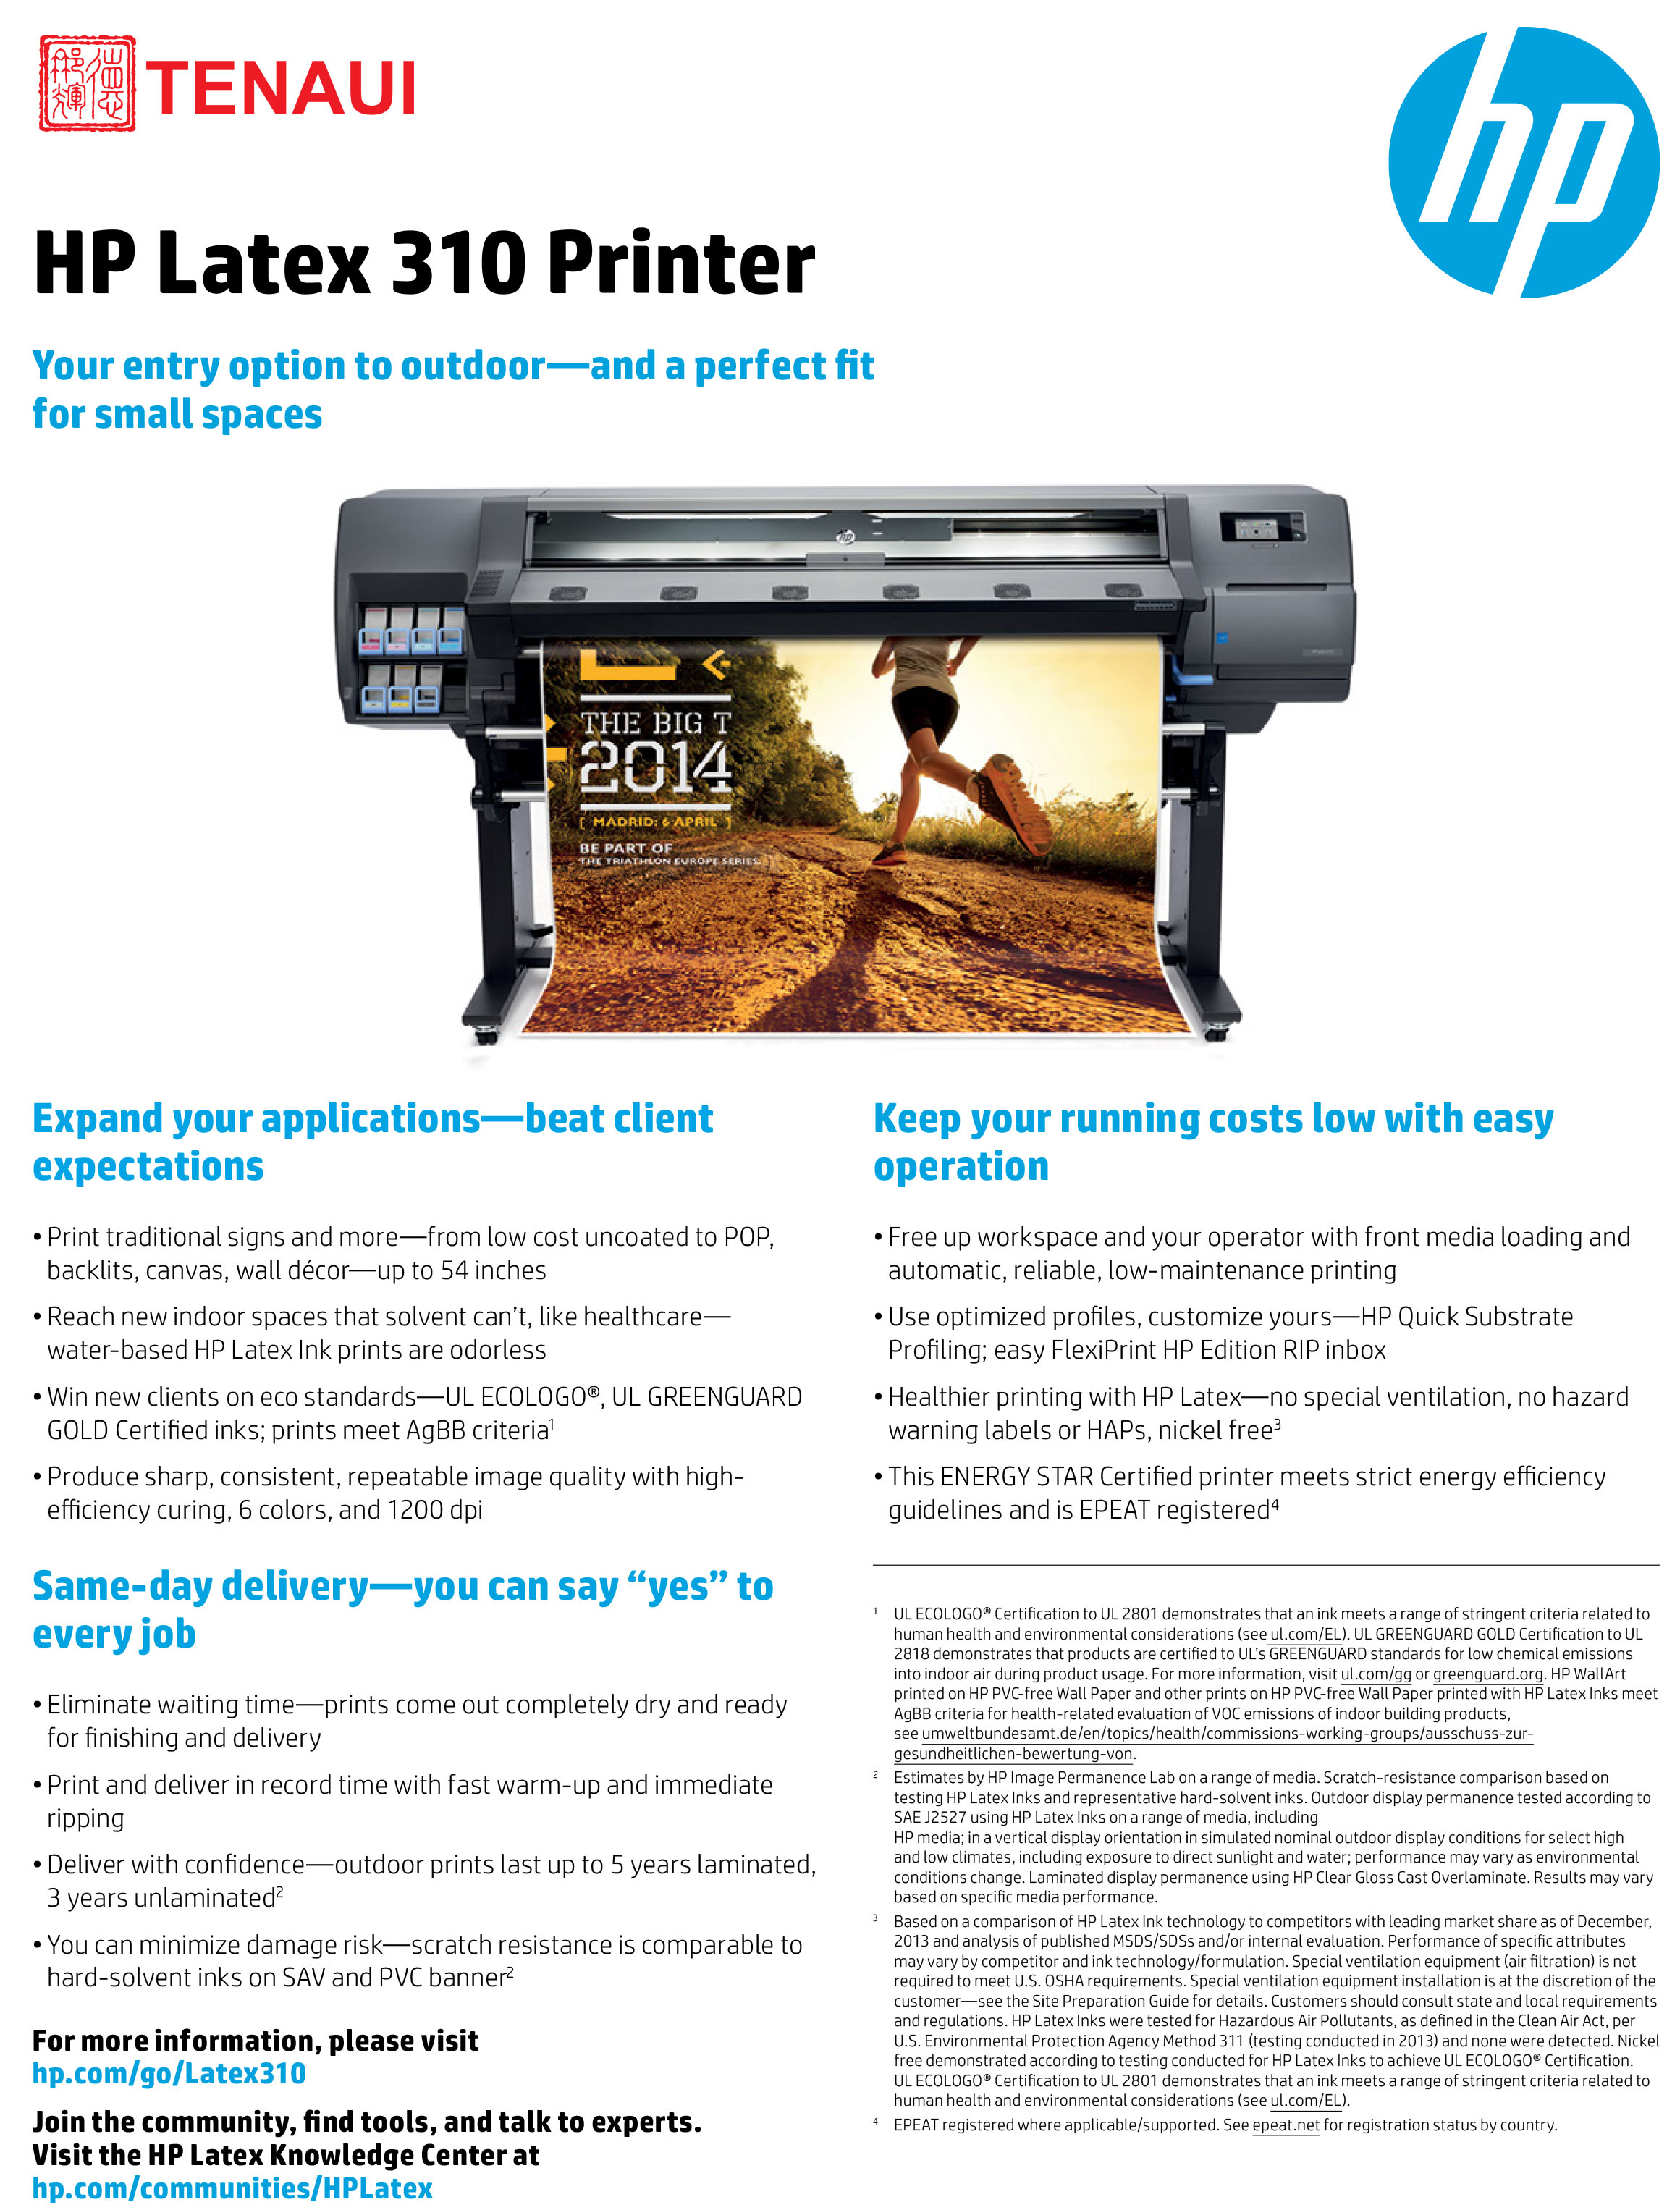 hp-latex-310-printer-tenaui